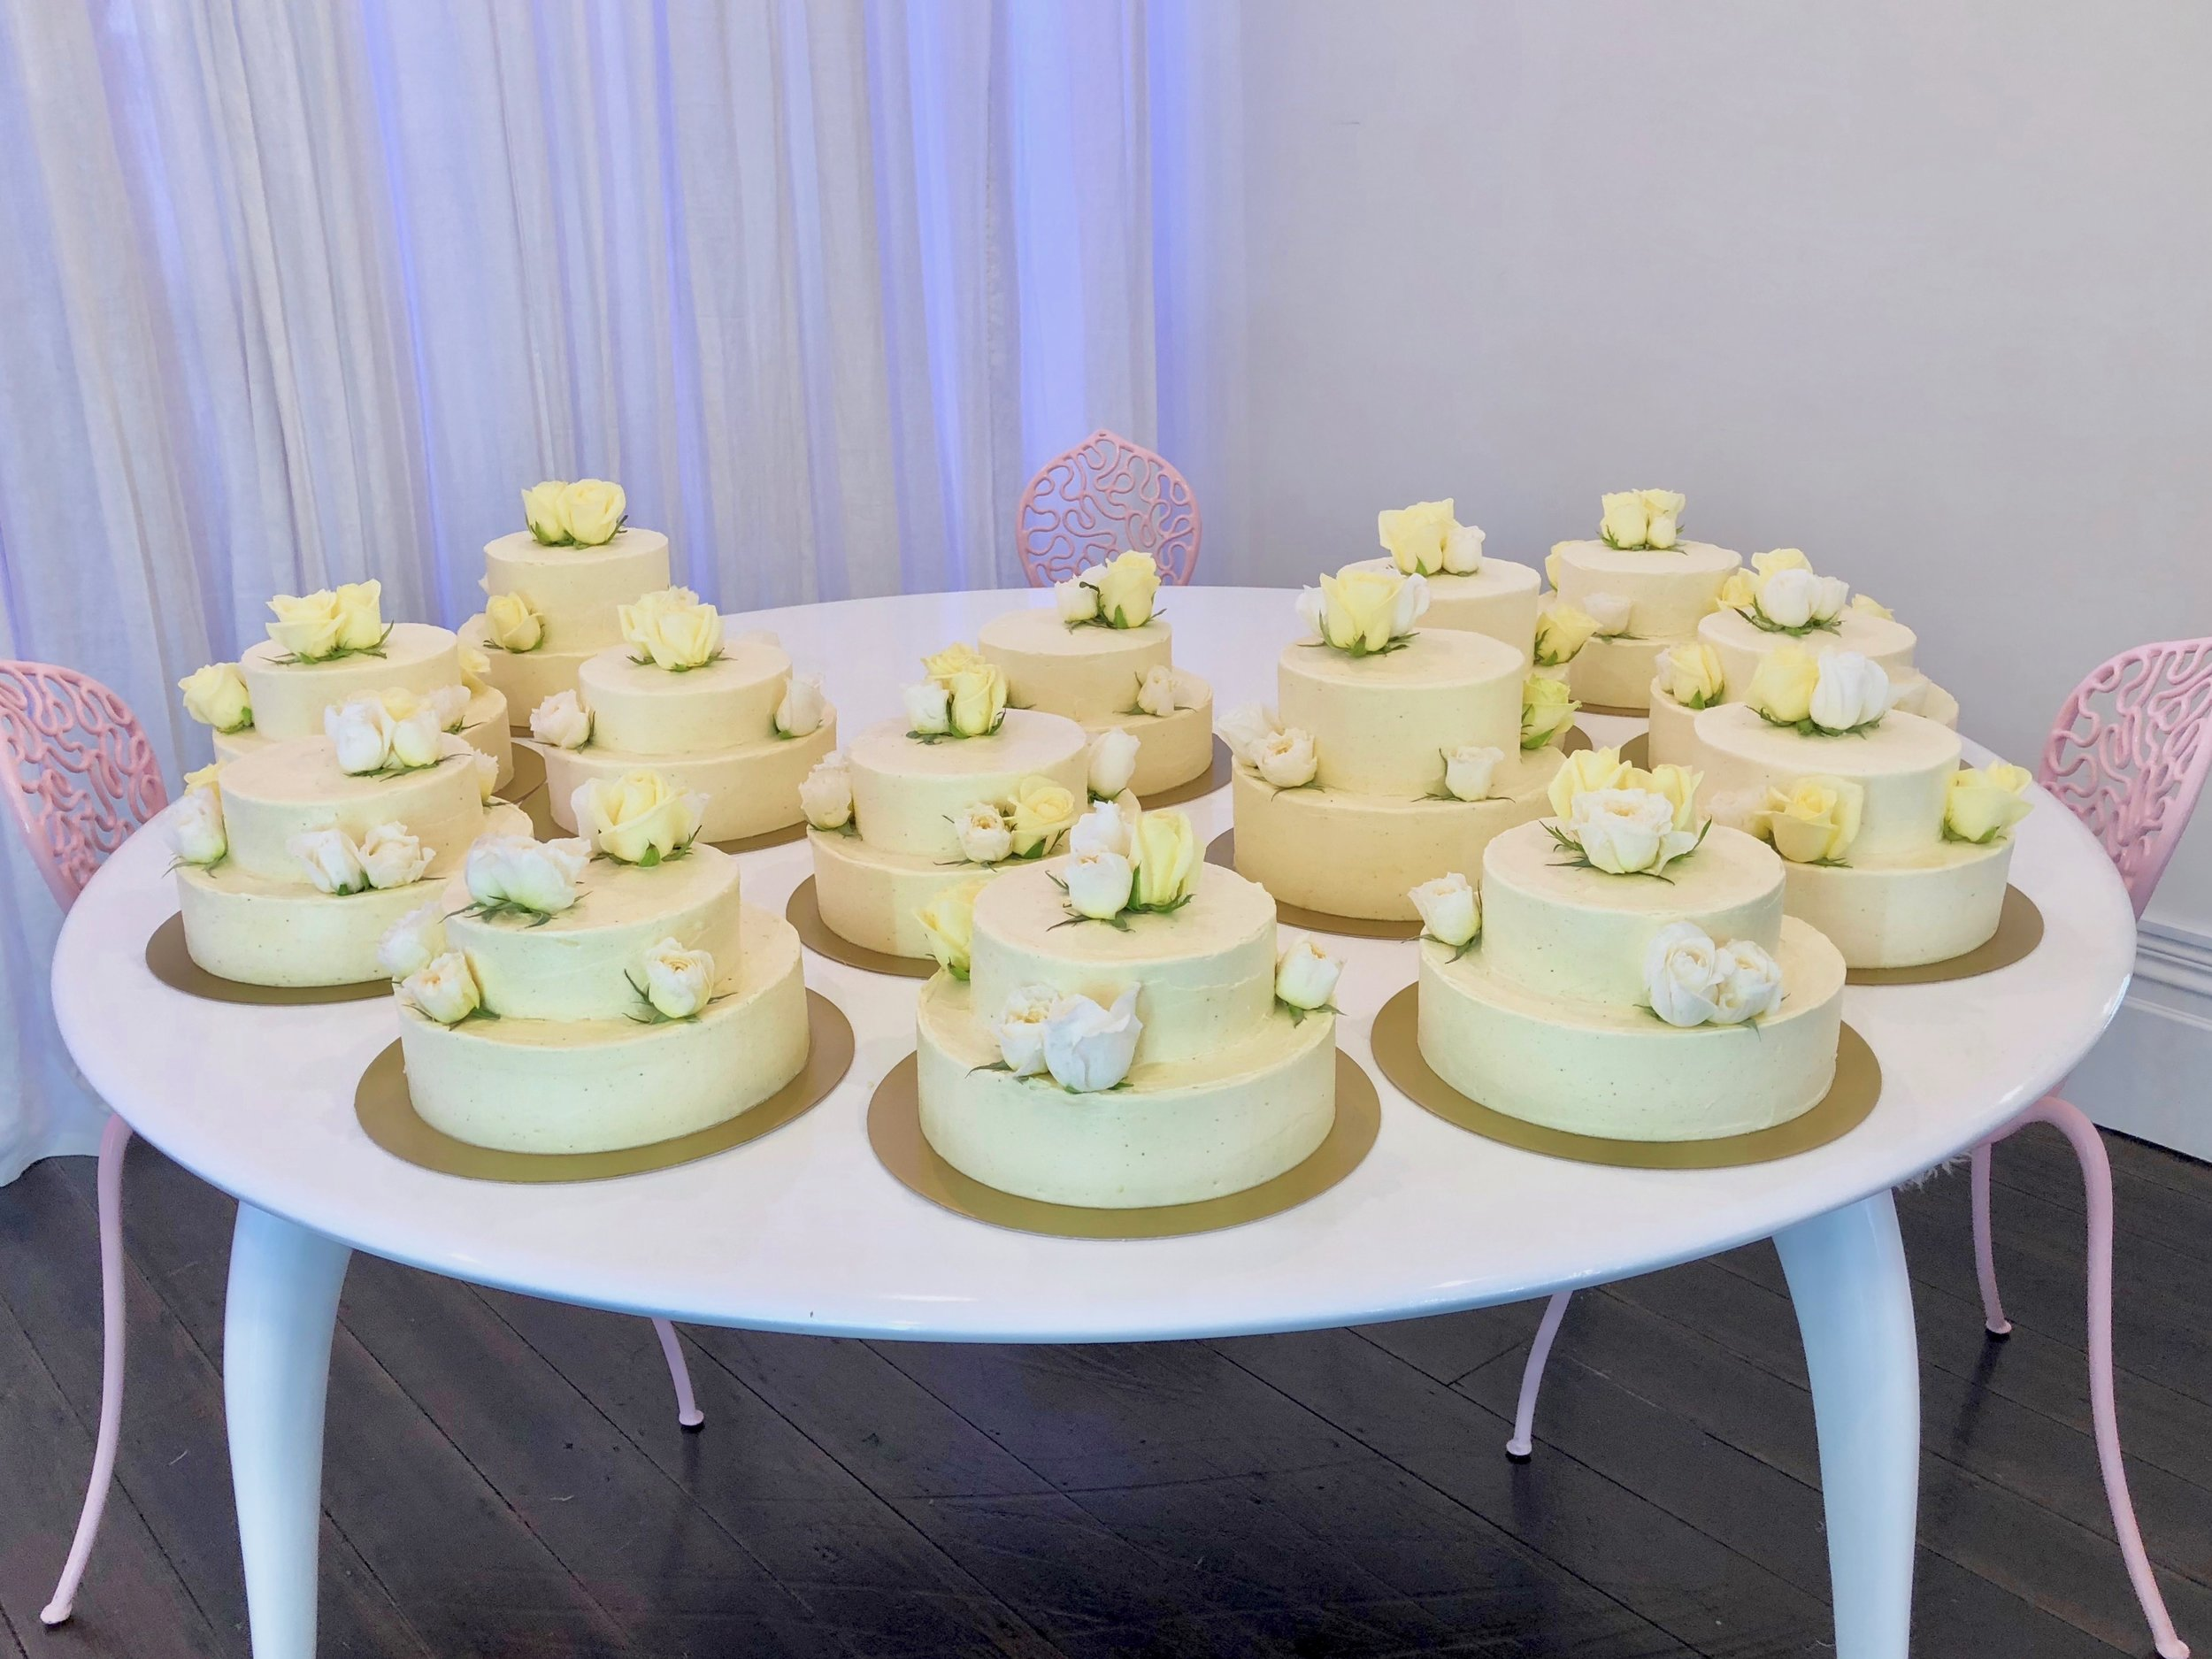 Just some of the wedding cakes we created.